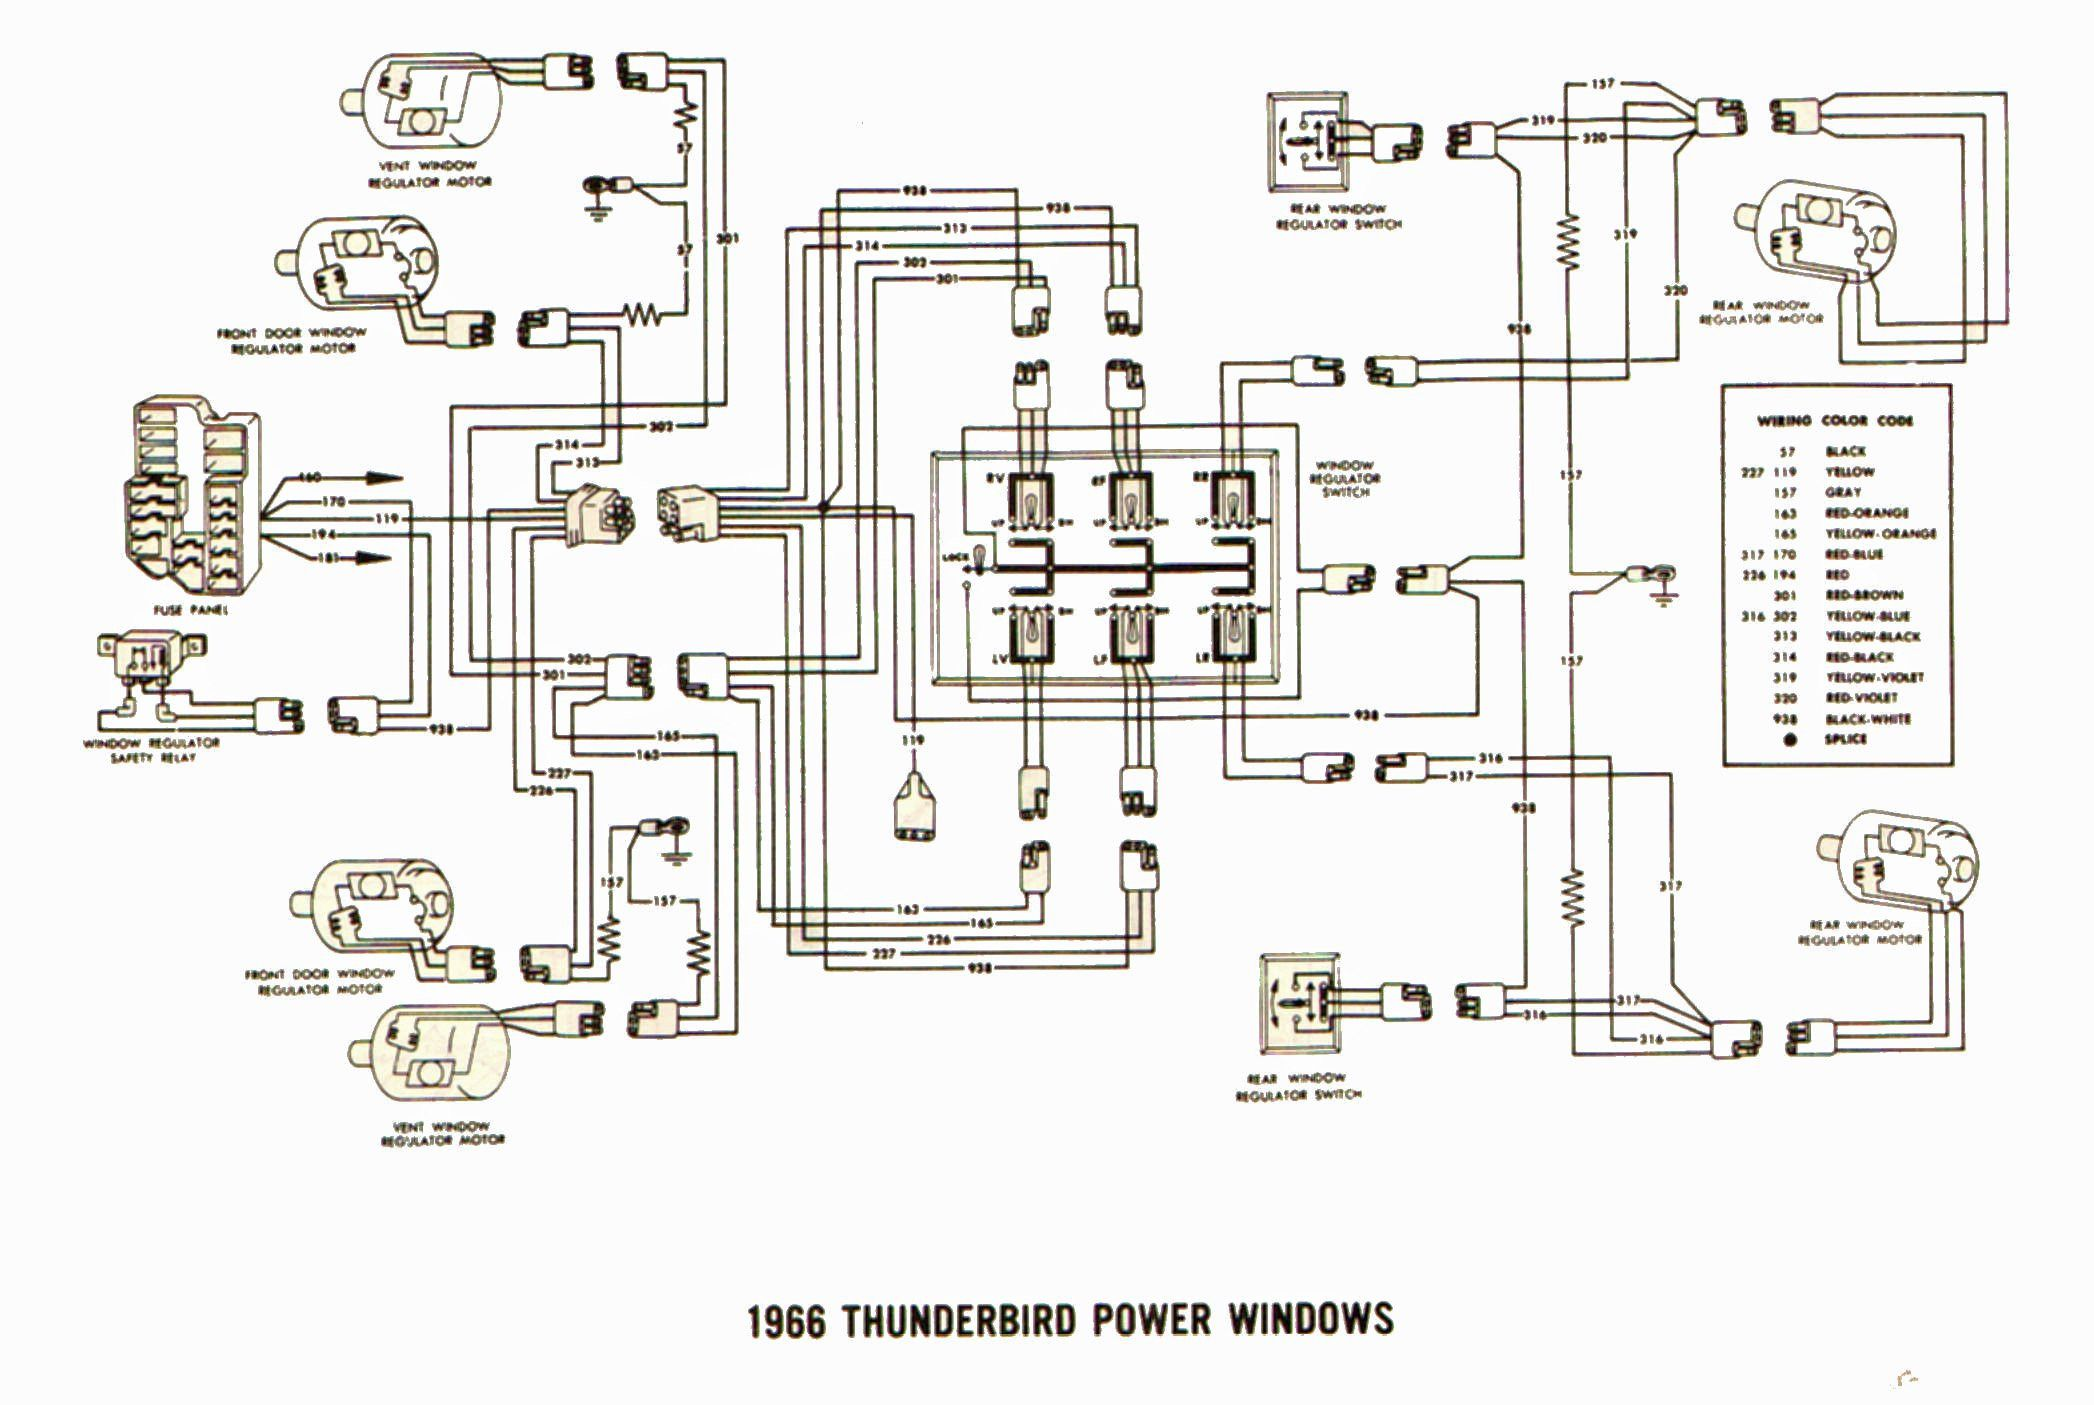 18 Good Sample Of Window Wiring Diagrams Design  With